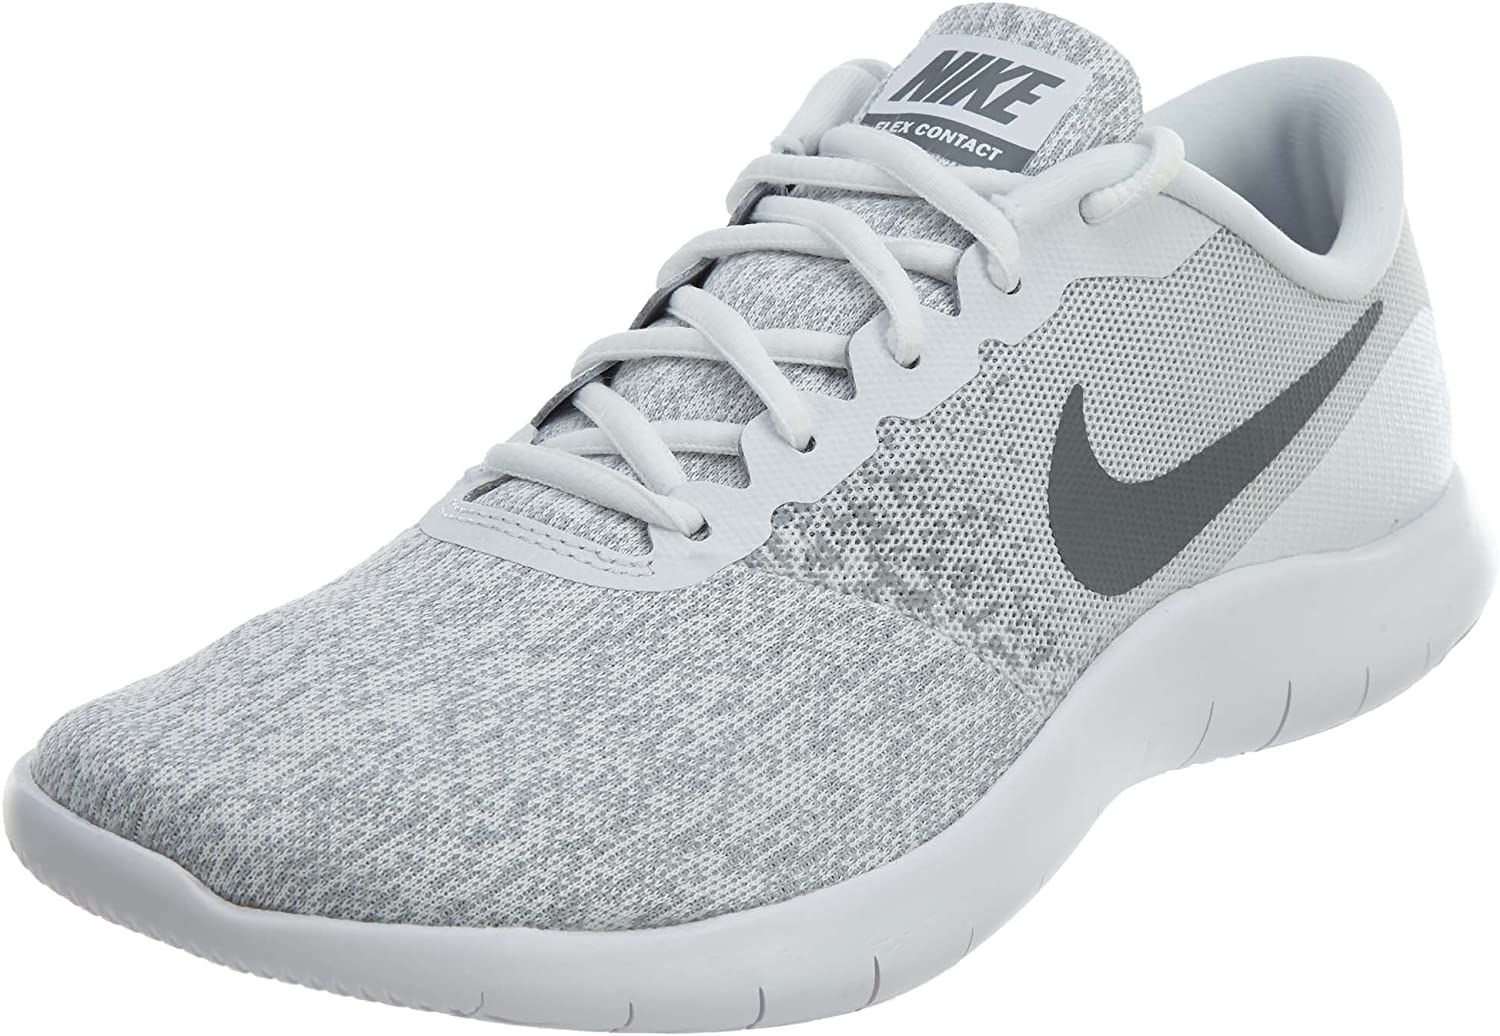 Nike Women s Flex Contact Running Shoe White Cool Grey-Metallic Silver